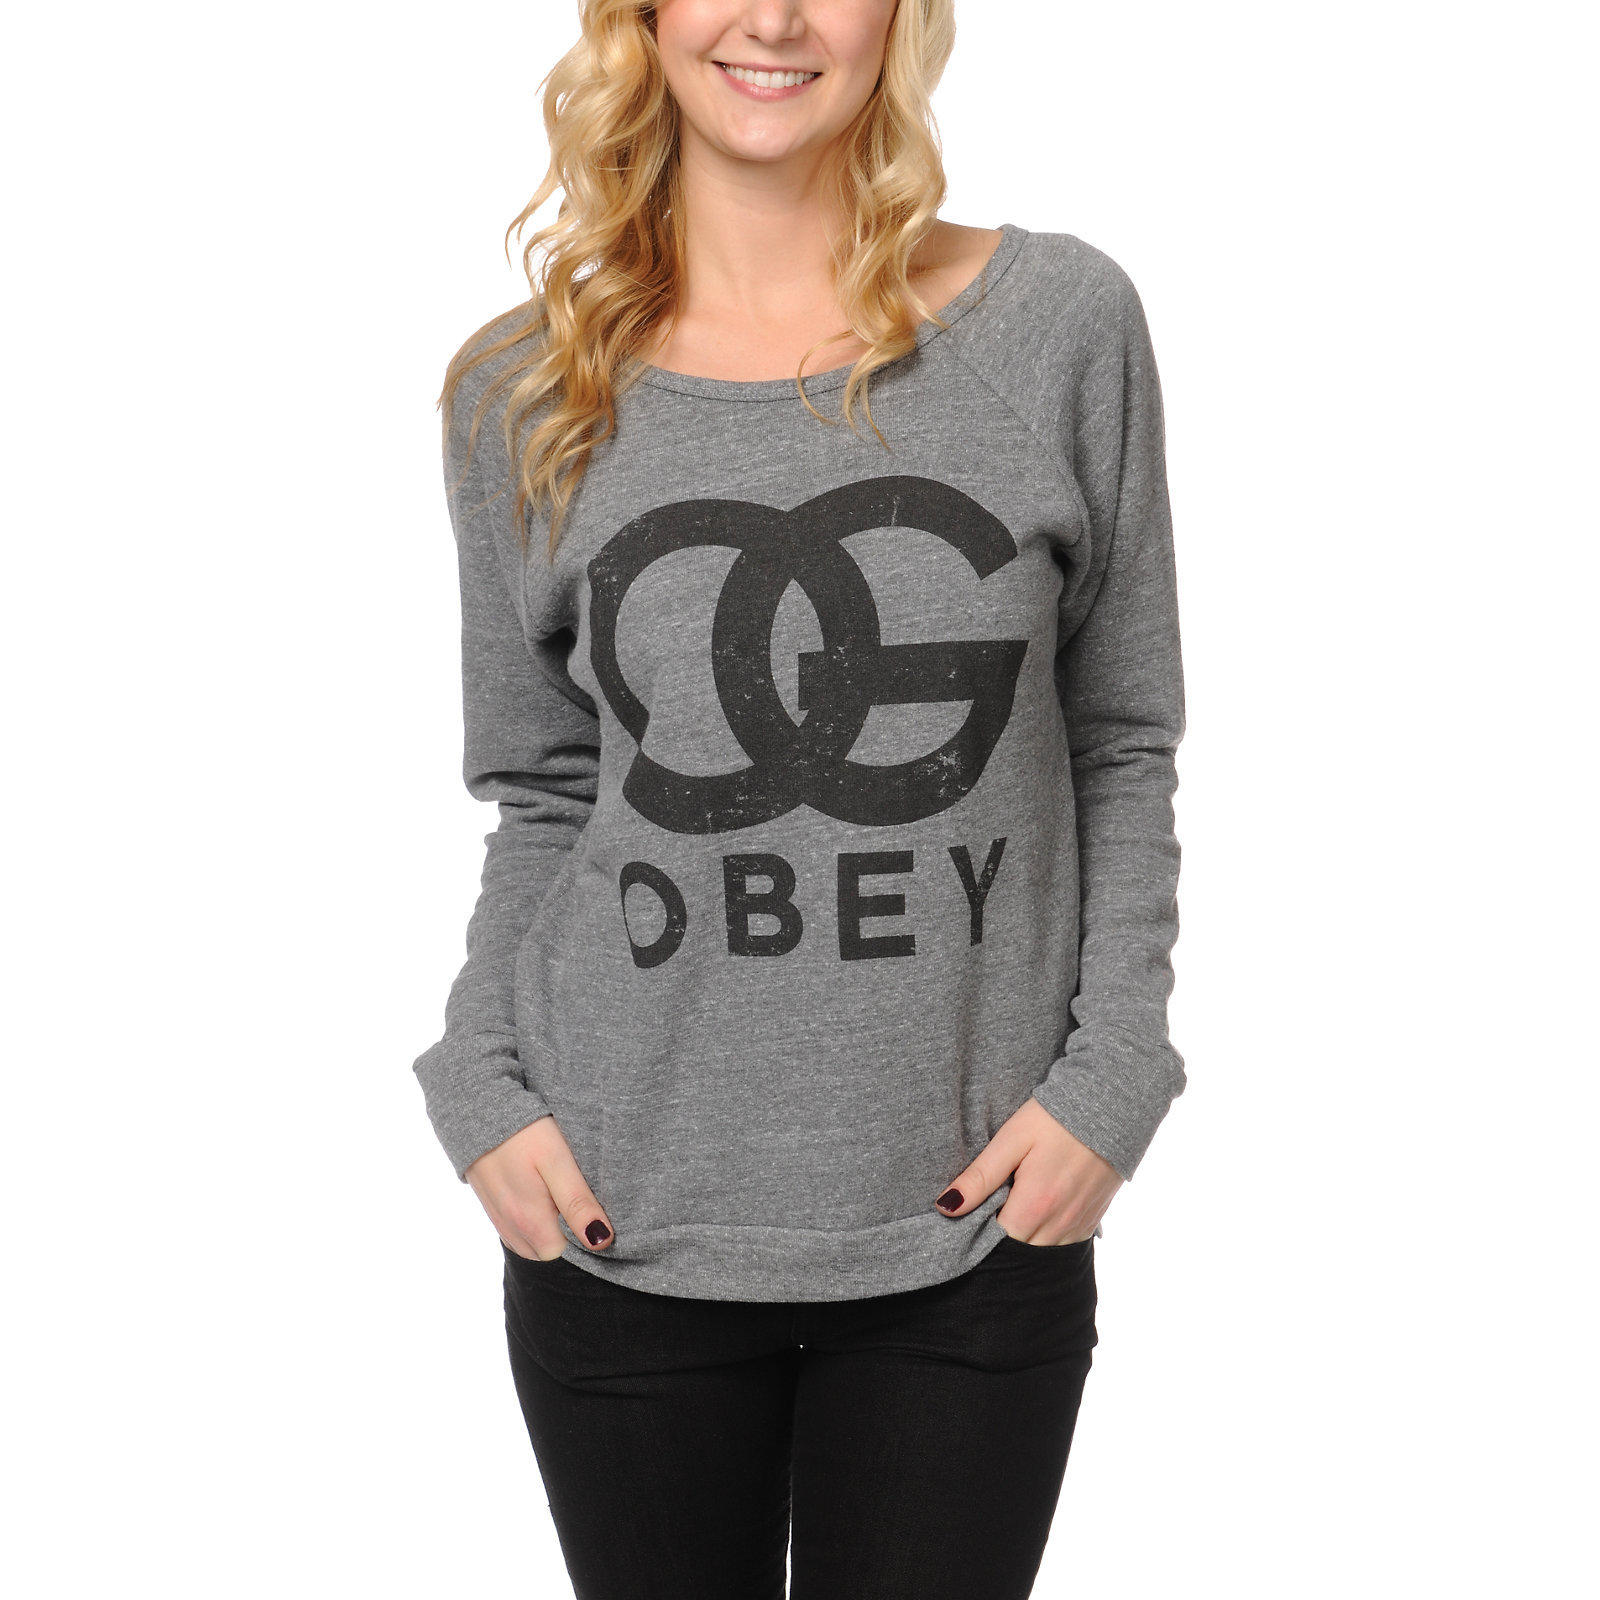 Obey Og Island Grey Pullover Hoodie - Cardigan With Buttons